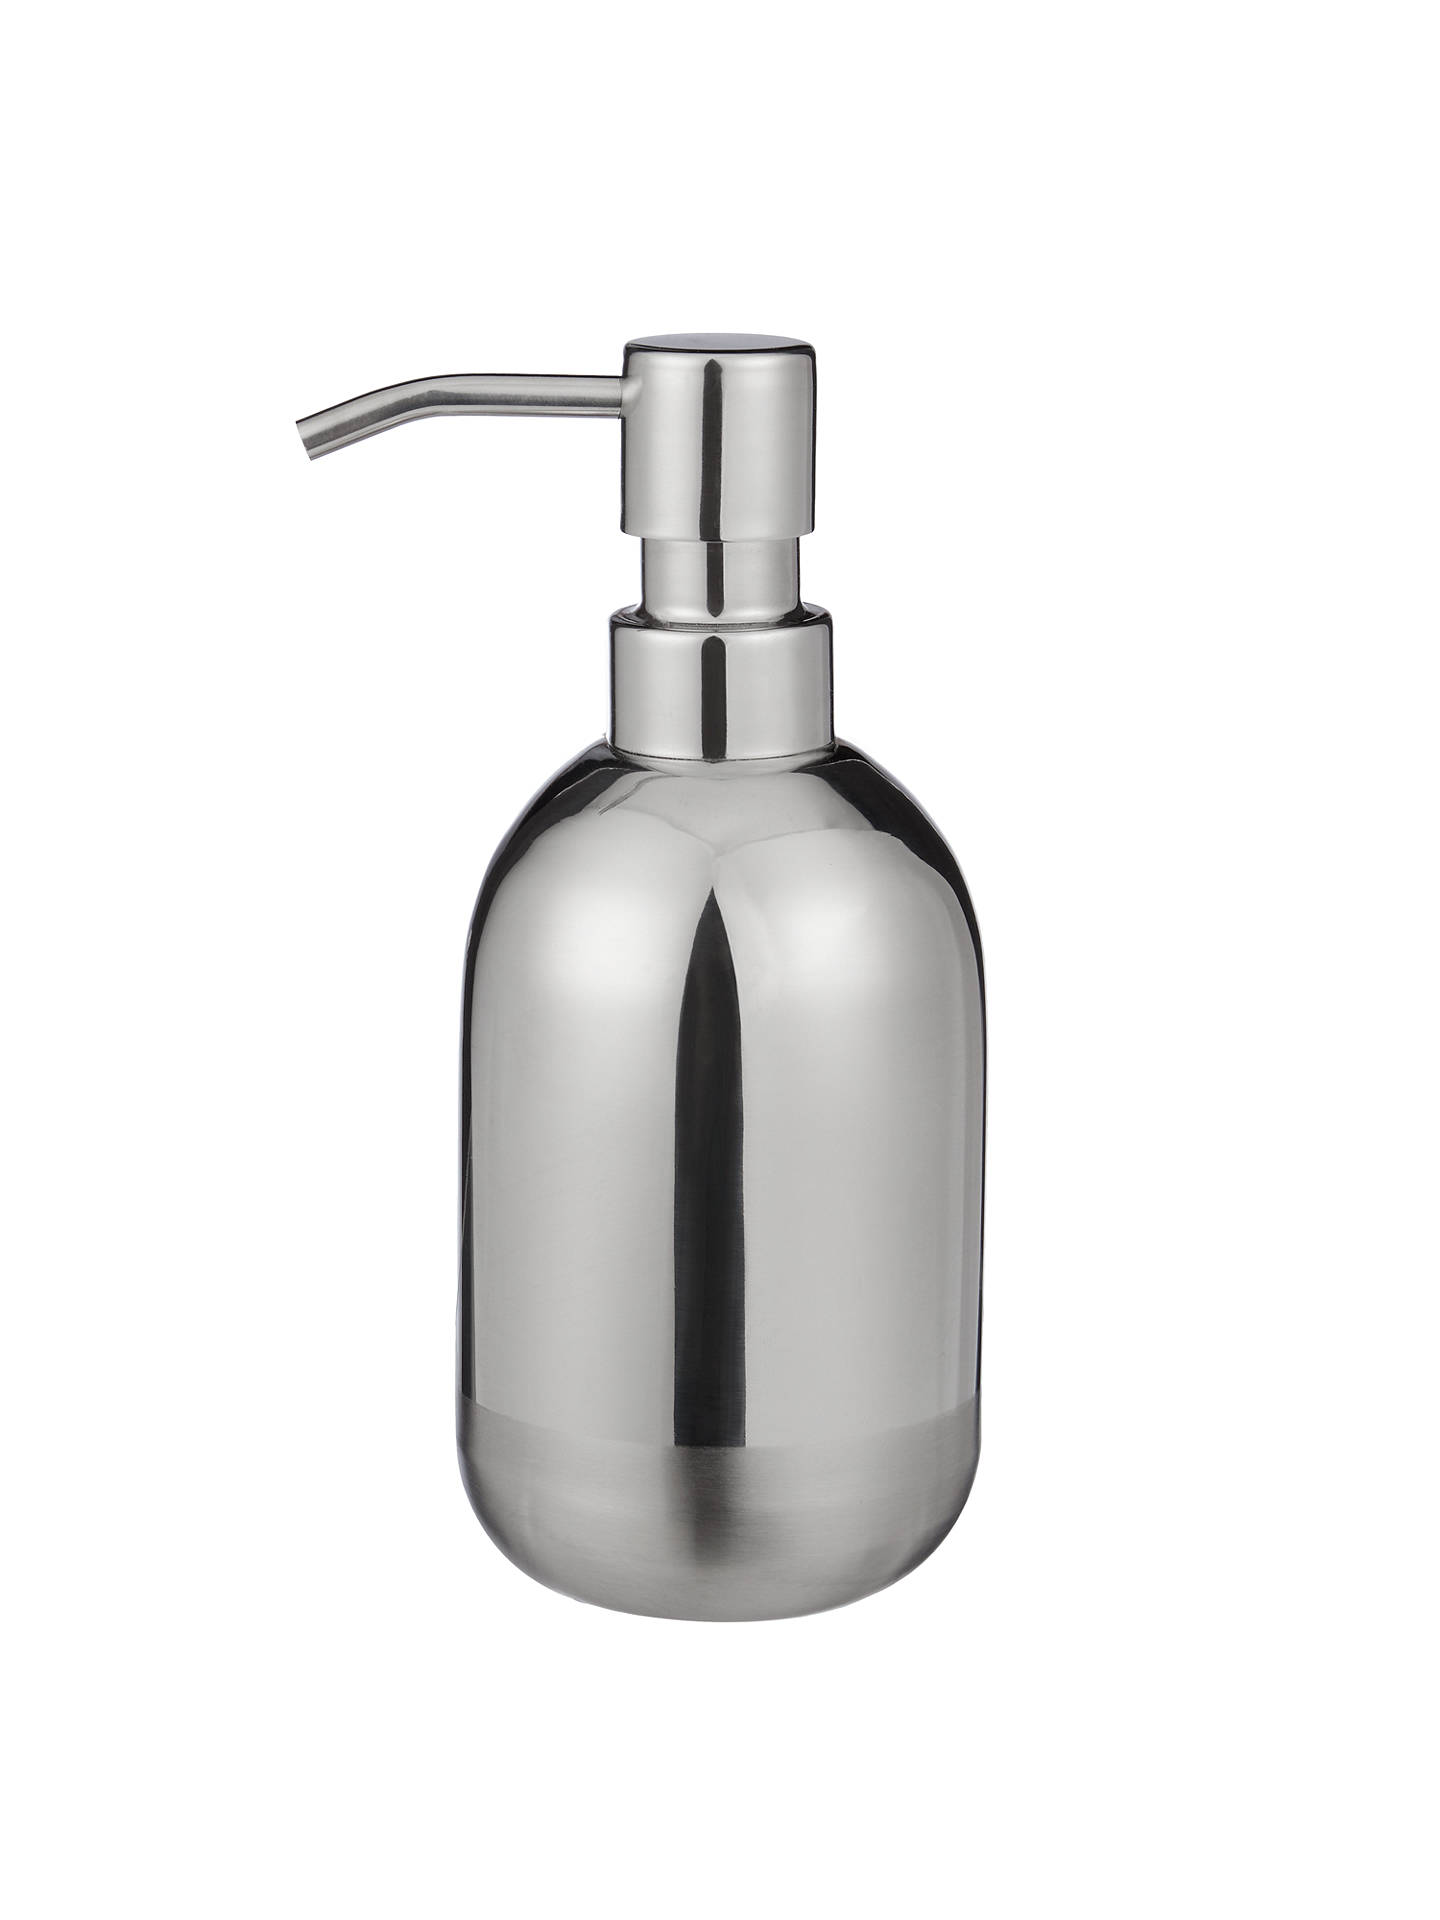 Buy Design Project by John Lewis No.170 Stainless Steel Soap Dispenser Online at johnlewis.com